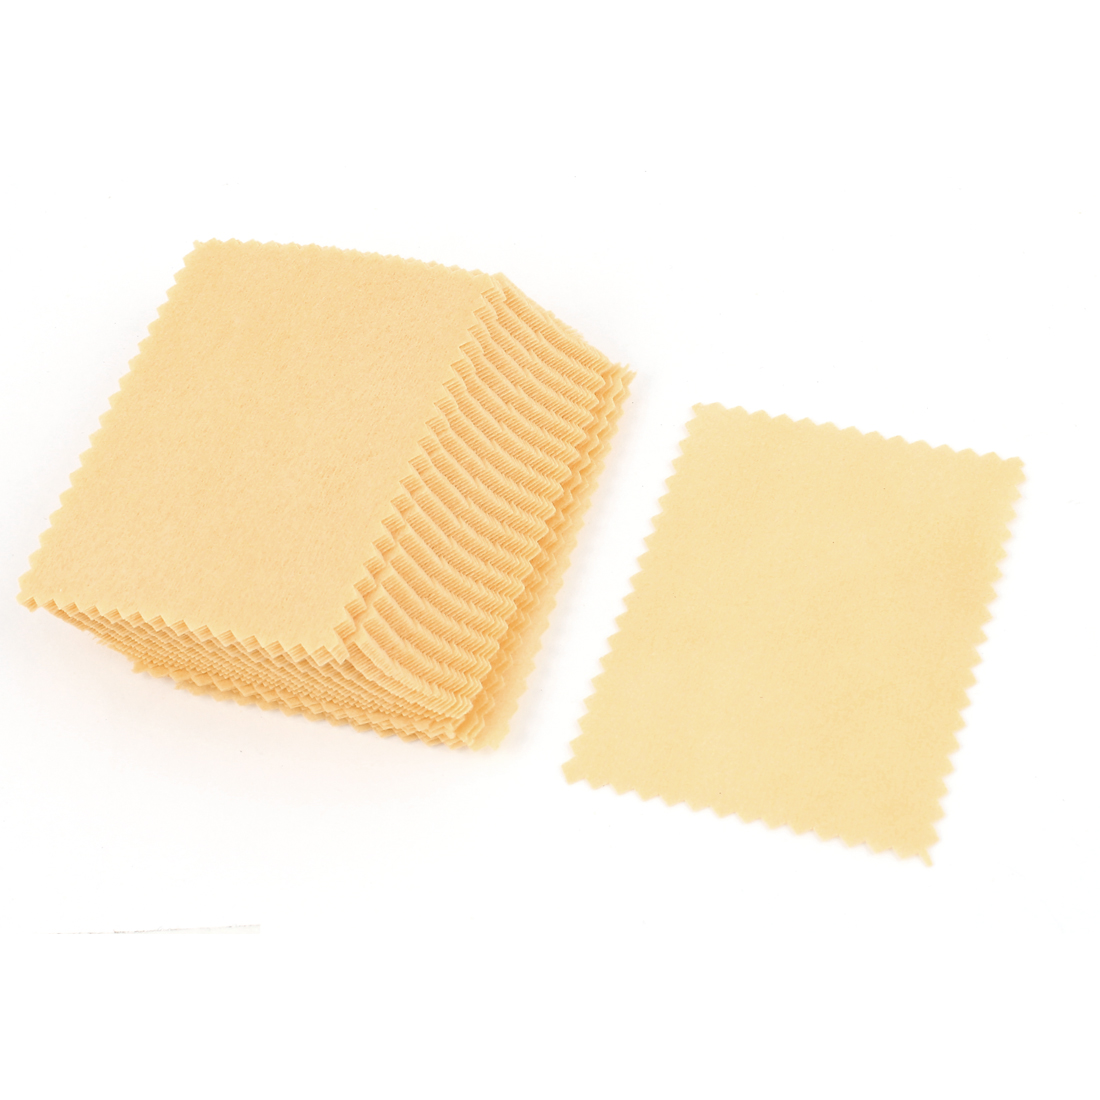 50PCS 6cm x 8cm Rectangle Scalloped Edge Cleaning Cloth for Screen Covering